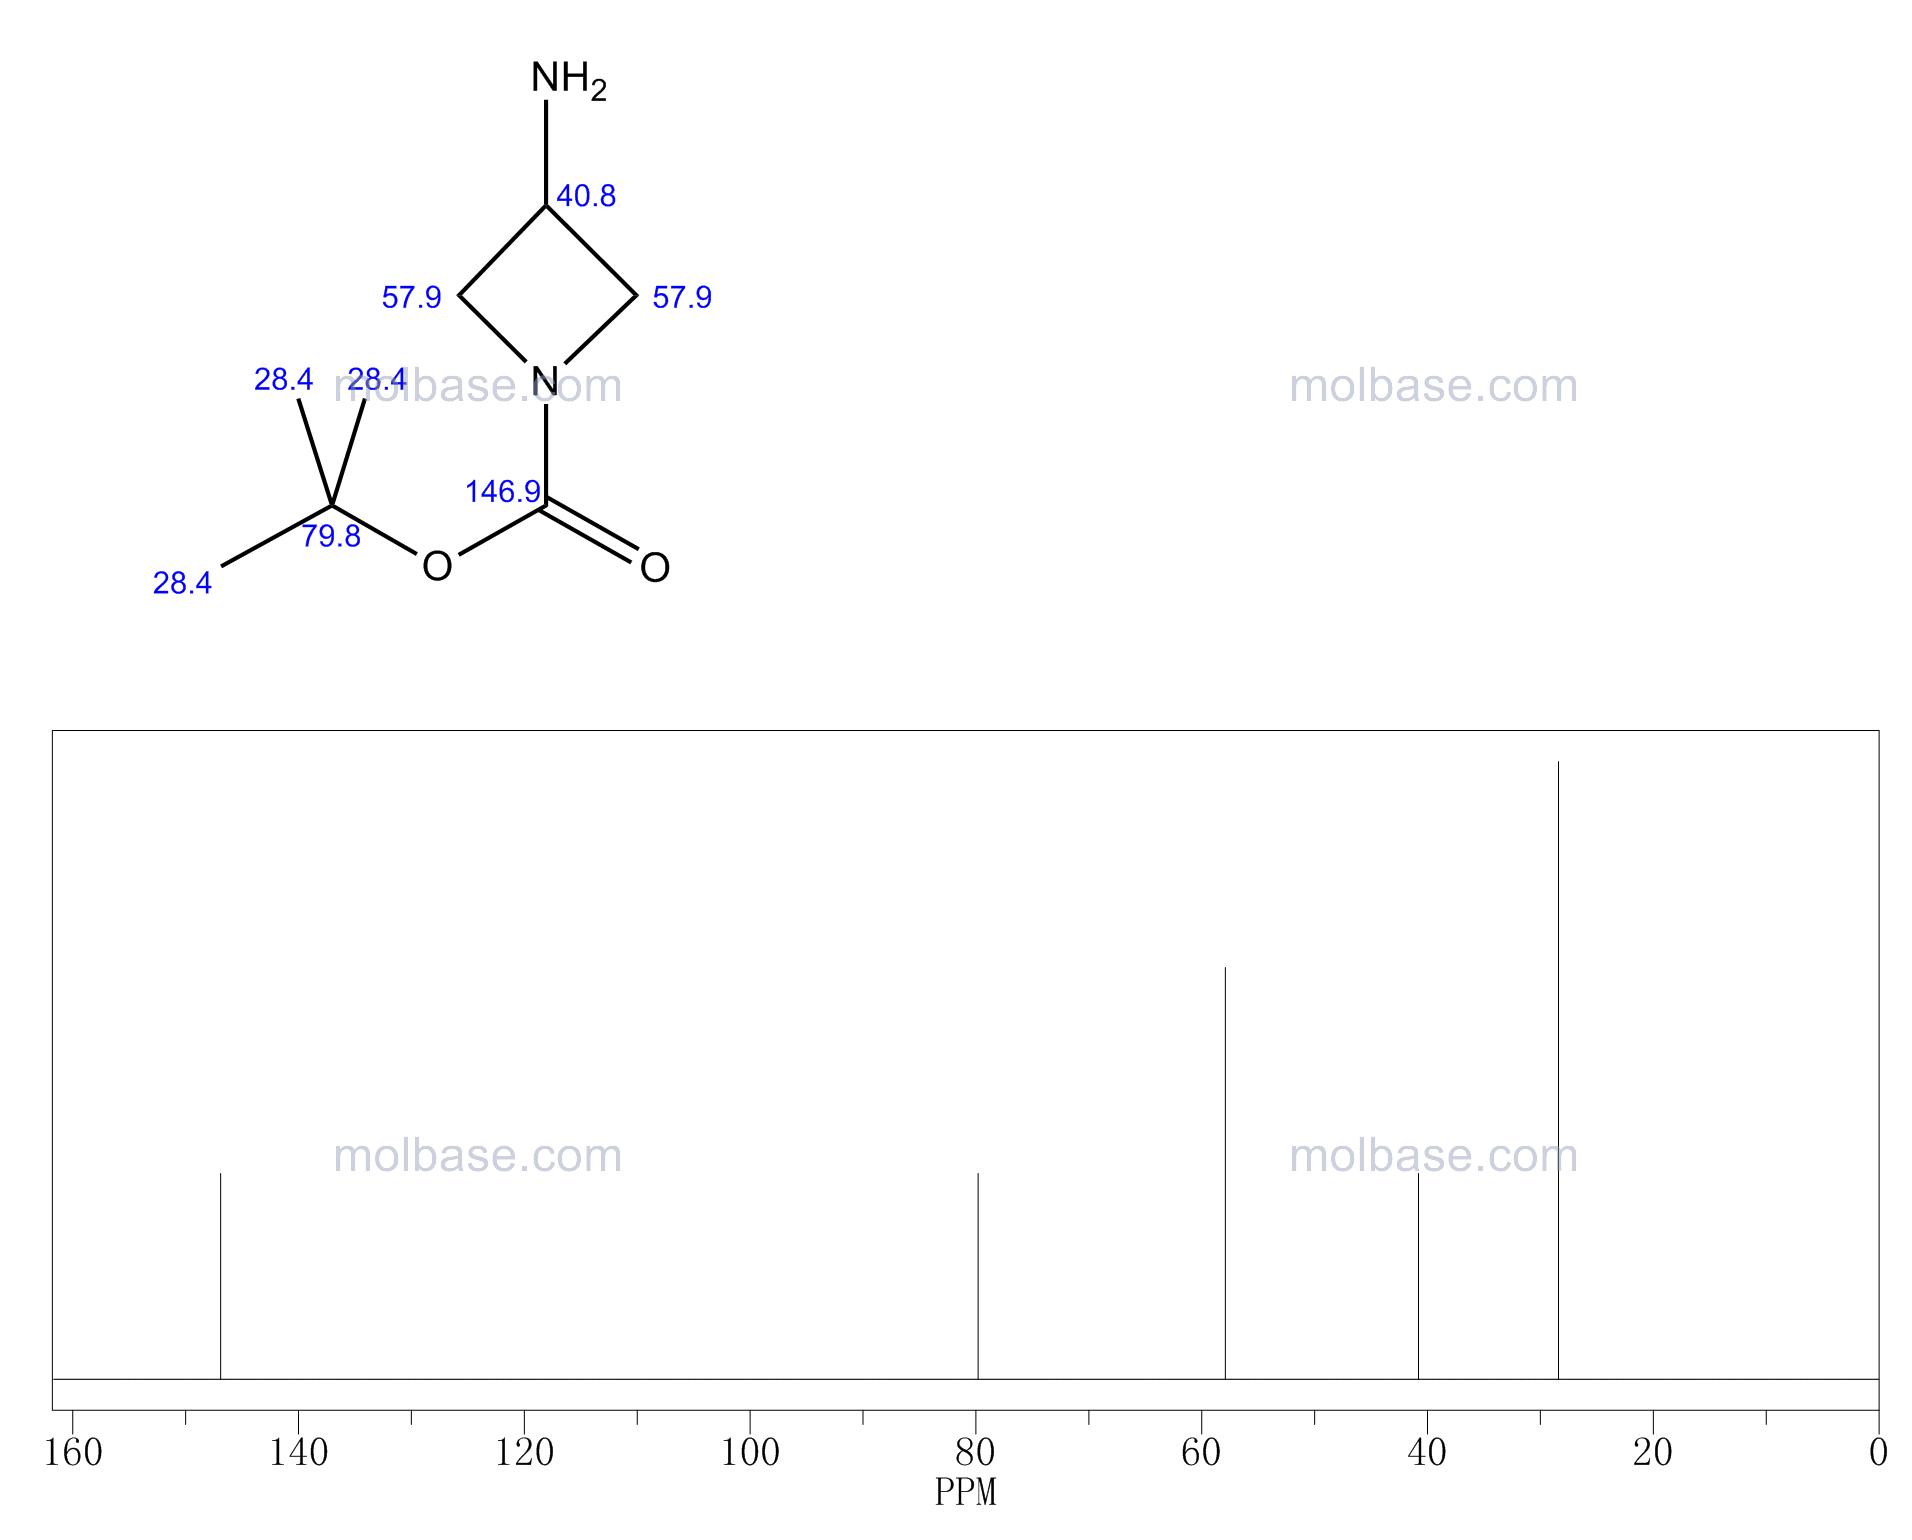 tert-butyl 3-aminoazetidine-1-carboxylate NMR spectra analysis, Chemical CAS NO. 193269-78-2 NMR spectral analysis, tert-butyl 3-aminoazetidine-1-carboxylate C-NMR spectrum